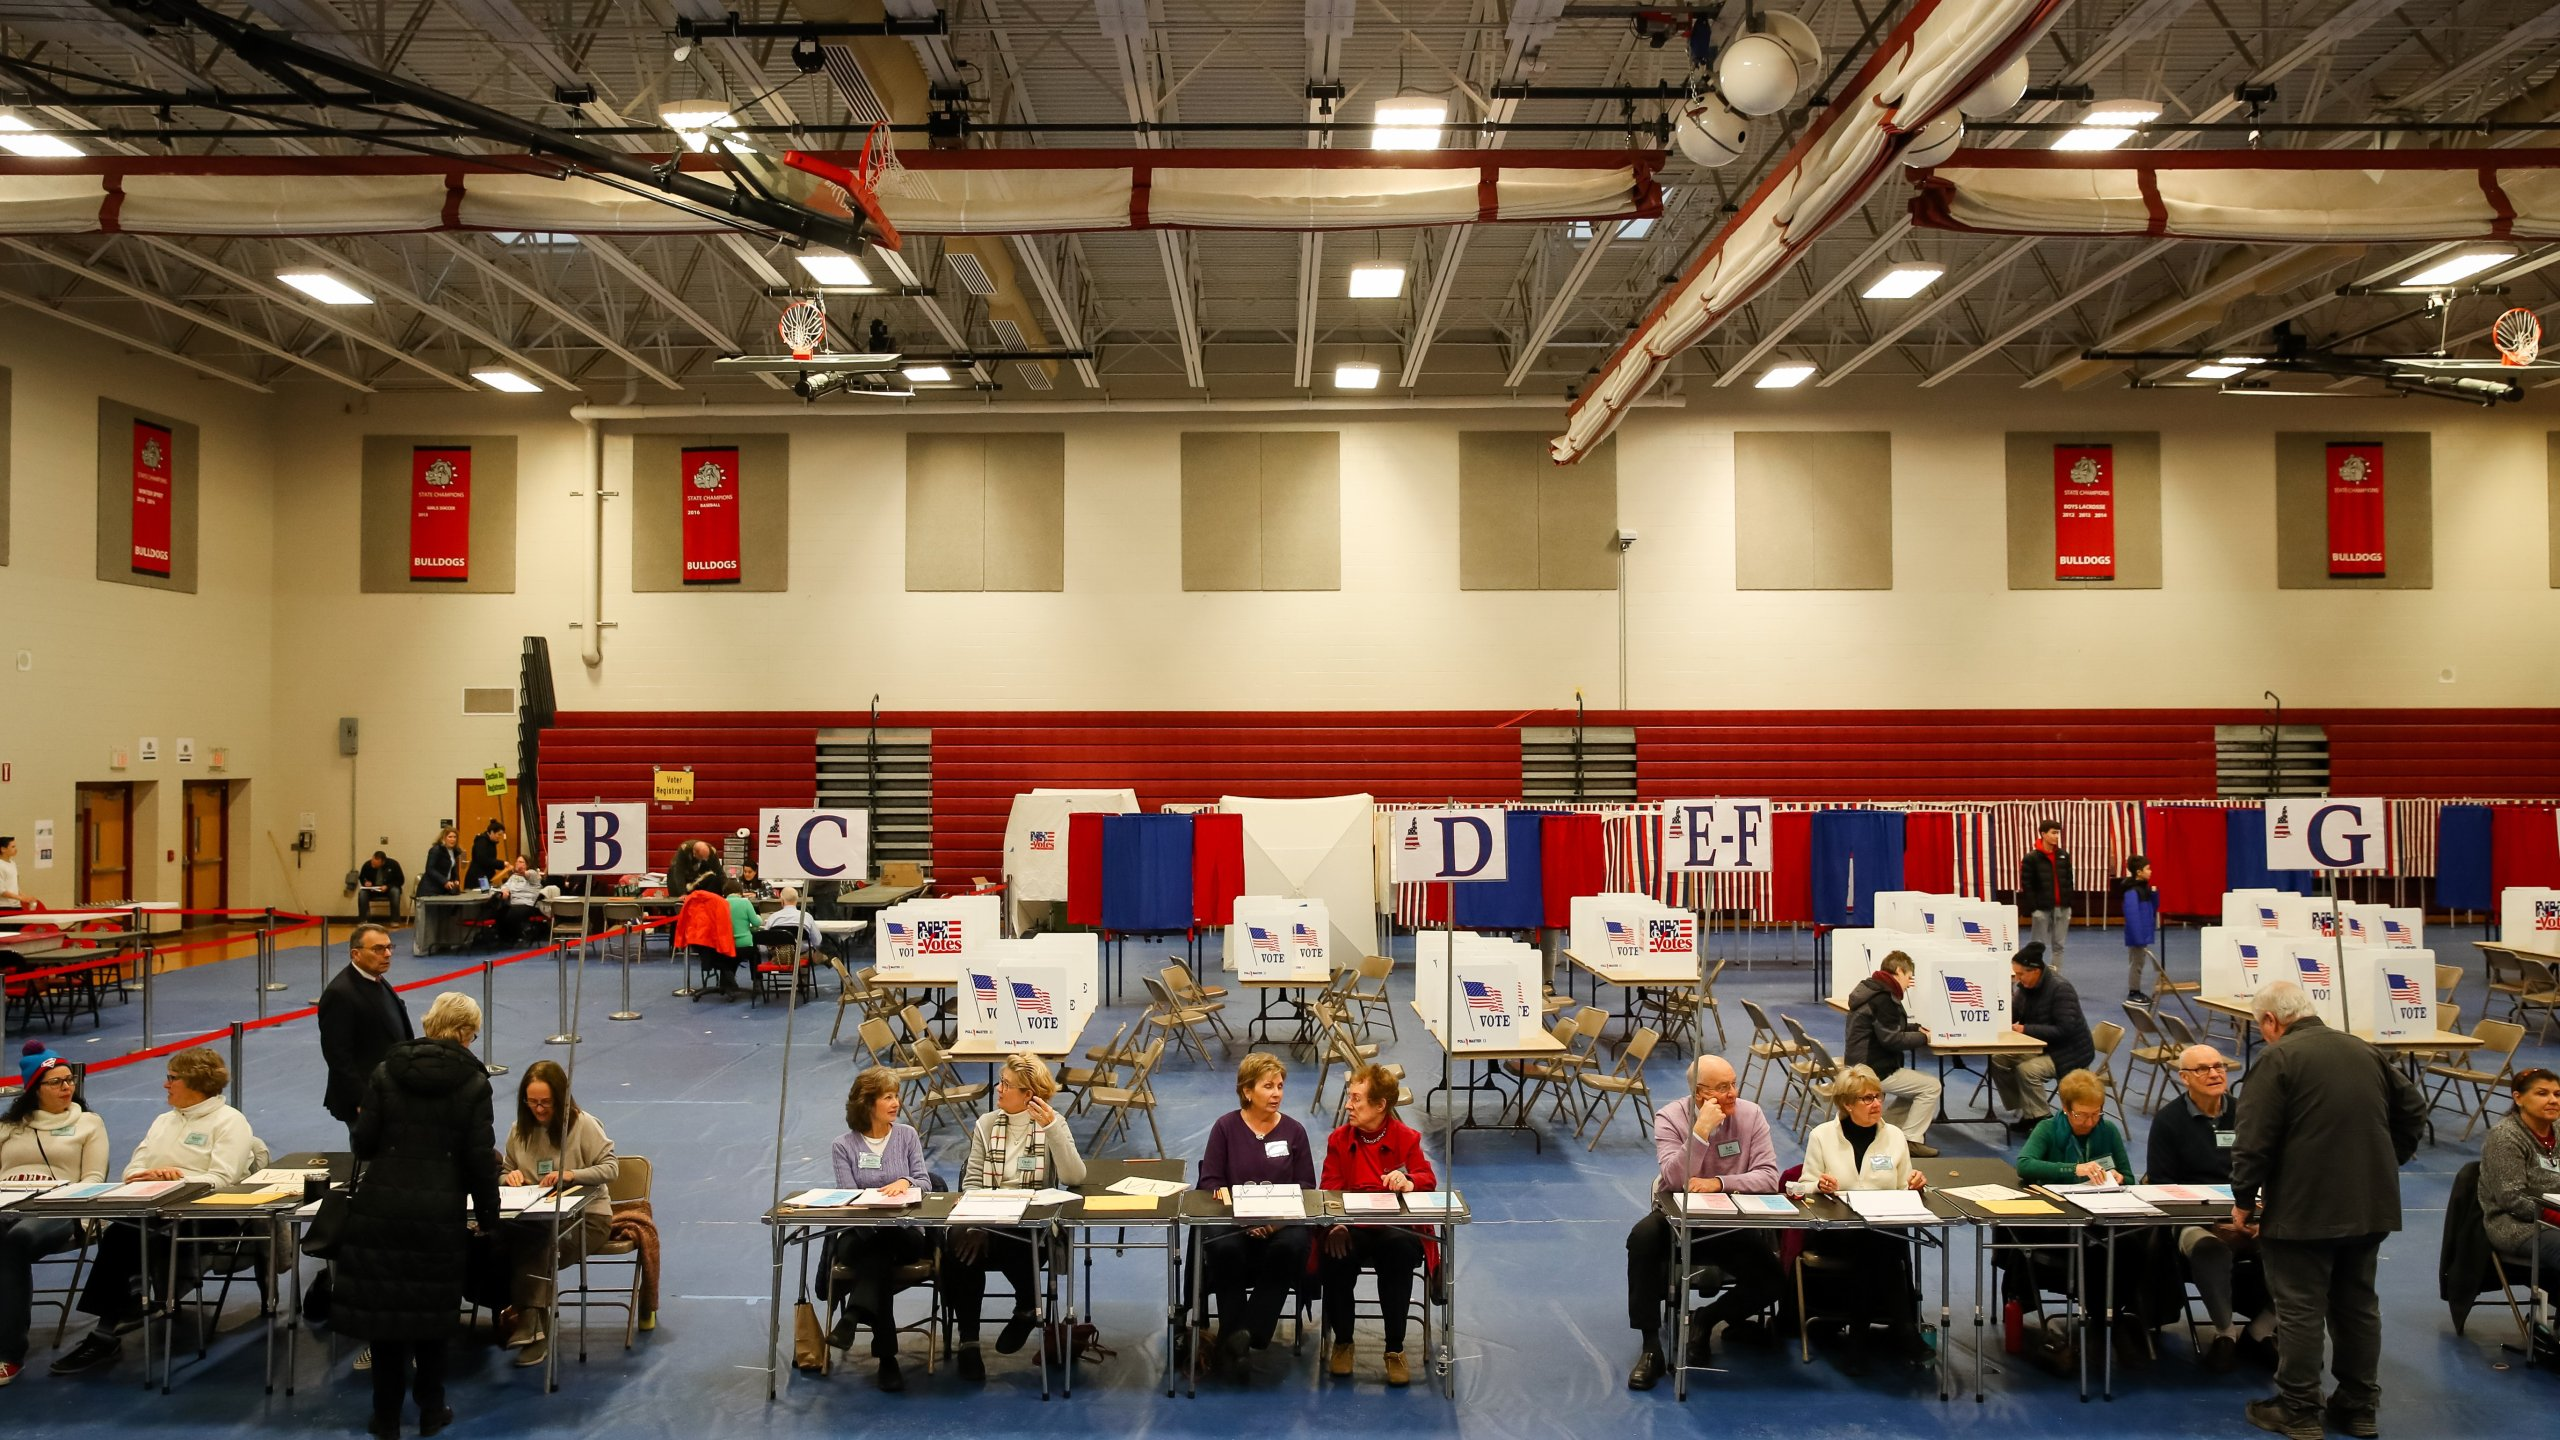 Poll workers wait for voters to check in at Bedford High School during the New Hampshire primary on Feb. 11, 2020 in Bedford, New Hampshire. (Credit: Matthew Cavanaugh/Getty Images)